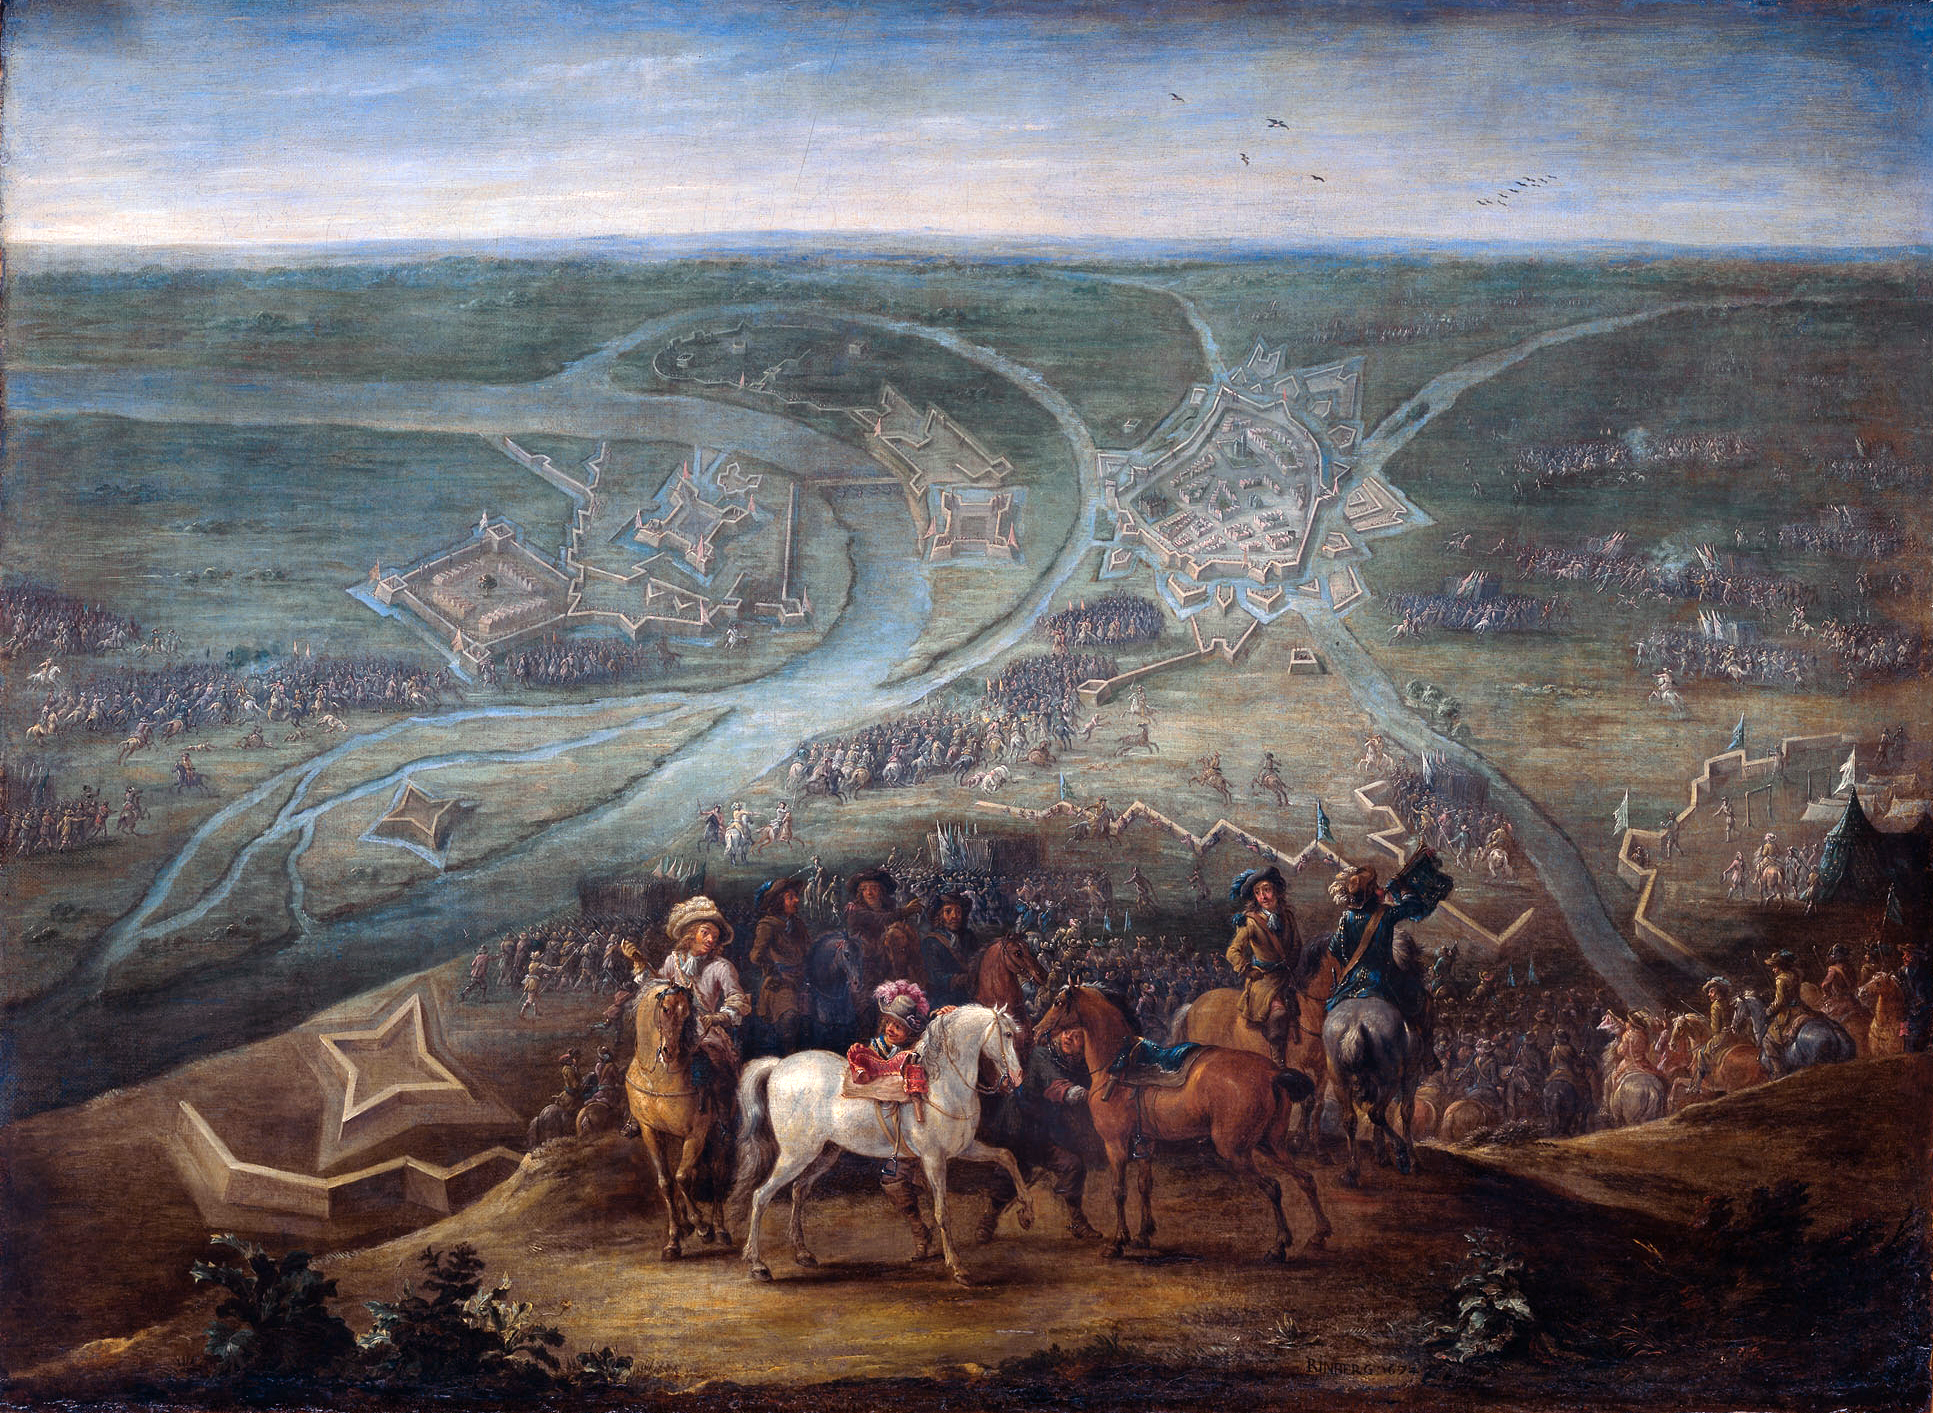 File:Siege of Rheinberg by French forces in 1672 - Het beleg van Rijnberg  door